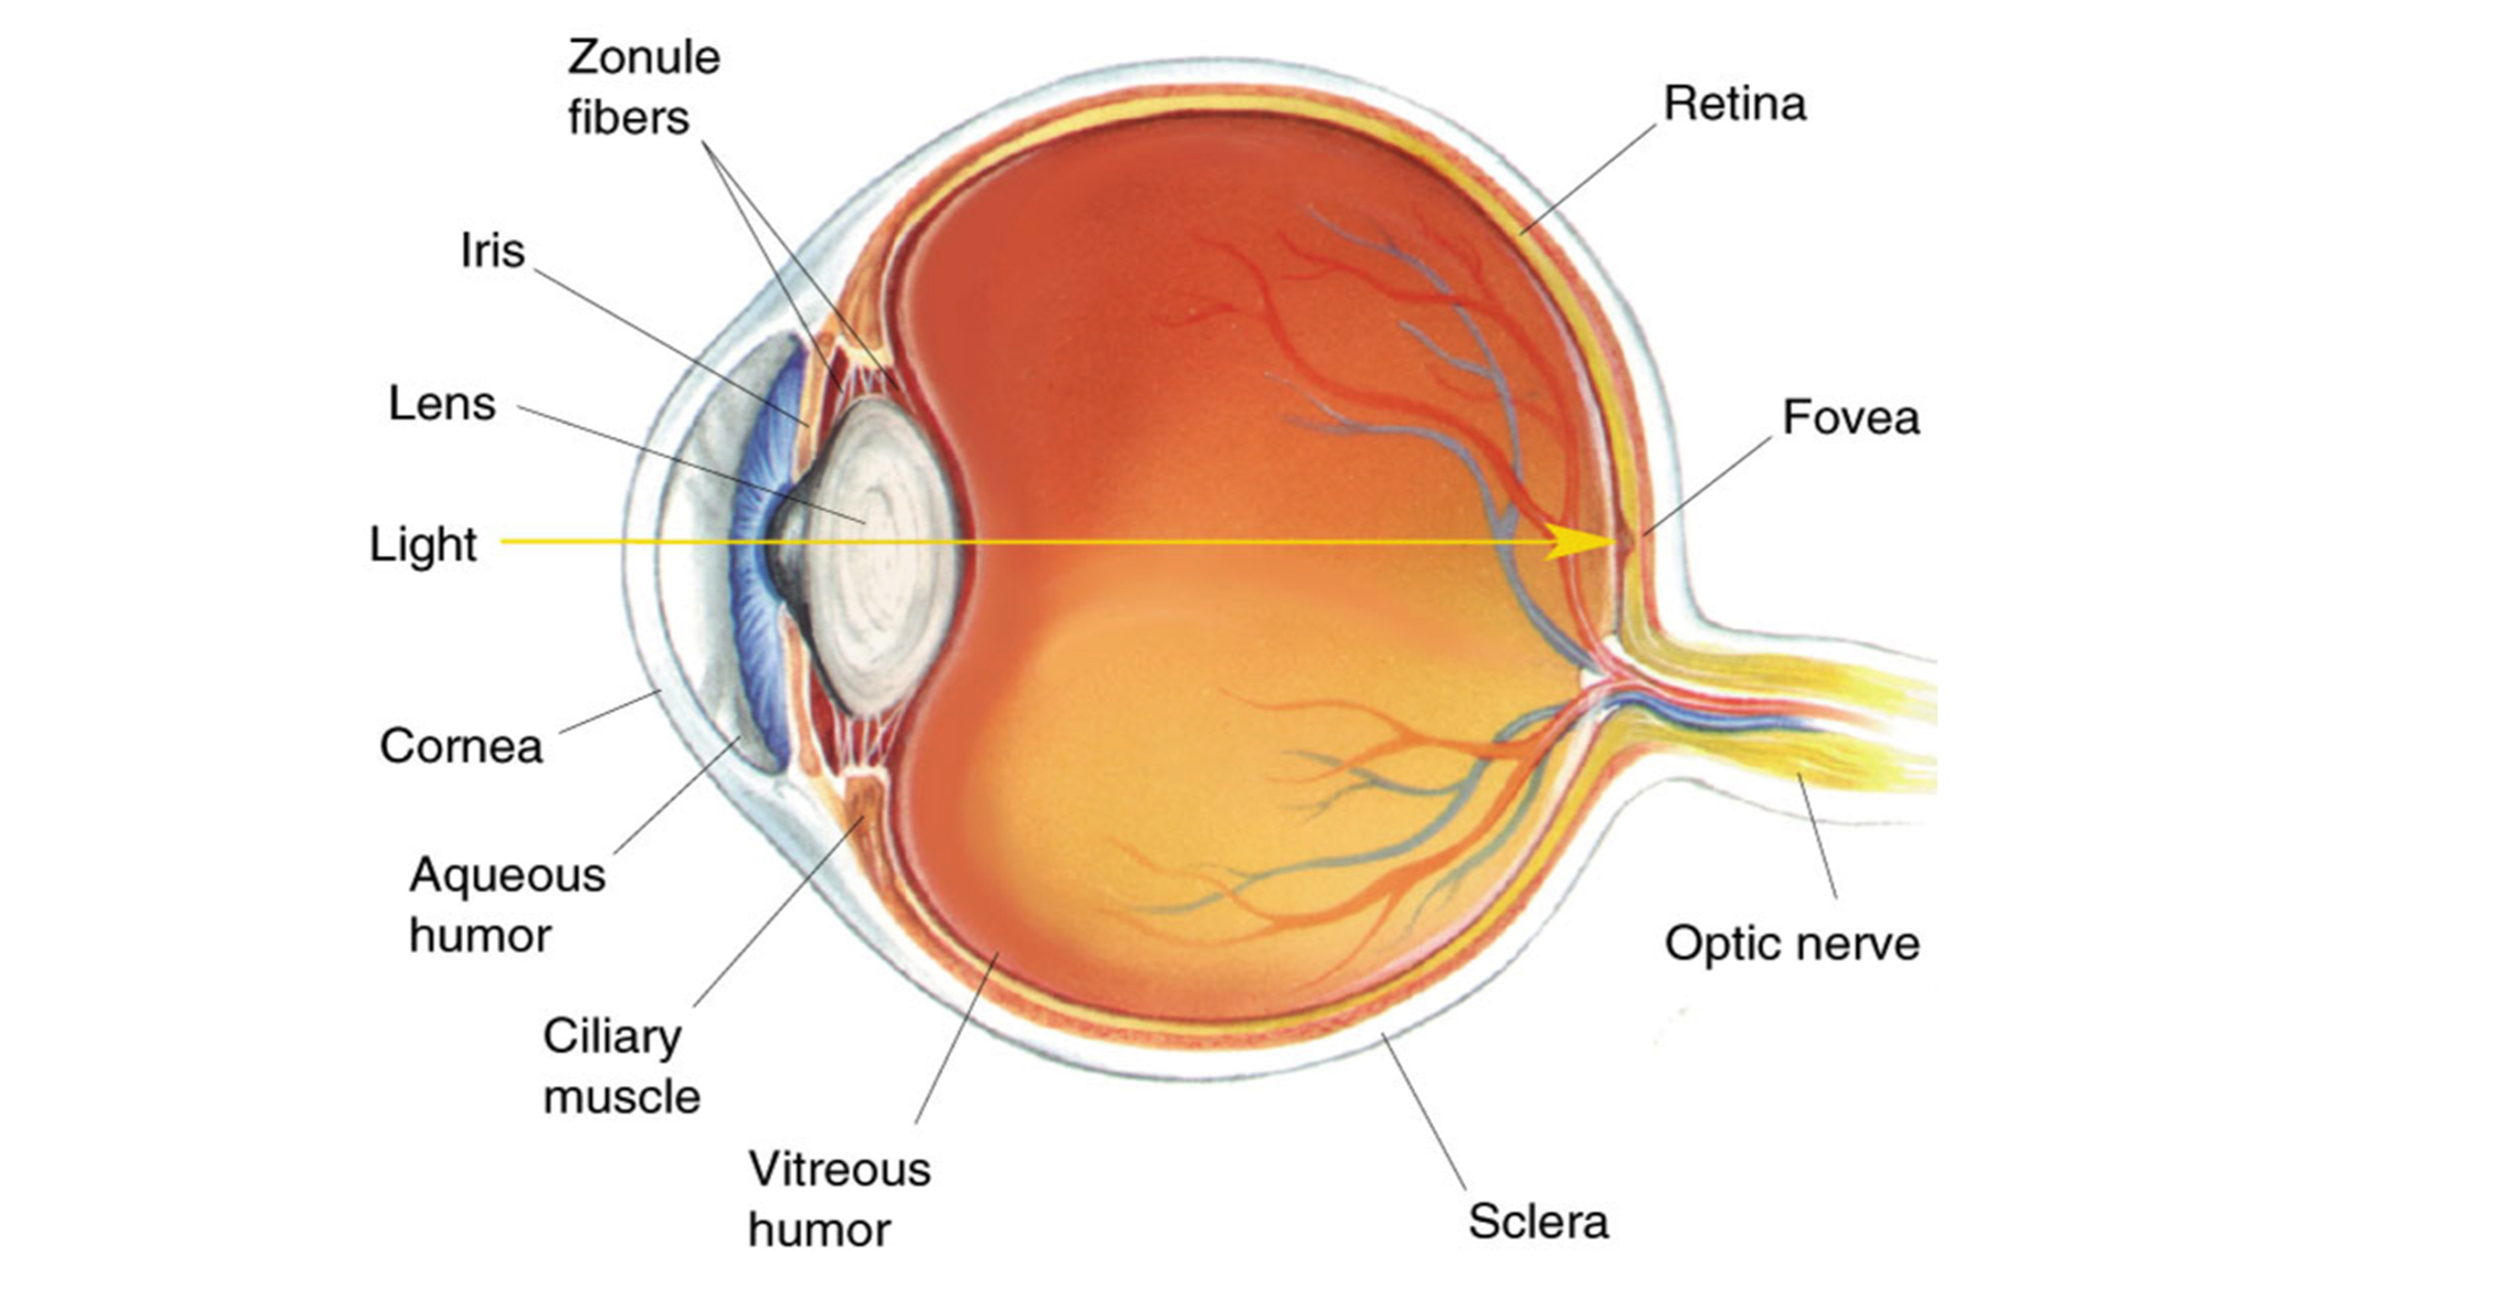 Cataract formation is a natural process that usually comes with age. The lens of the eye becomes progressively cloudy, blocking light from reaching the back of the eye.